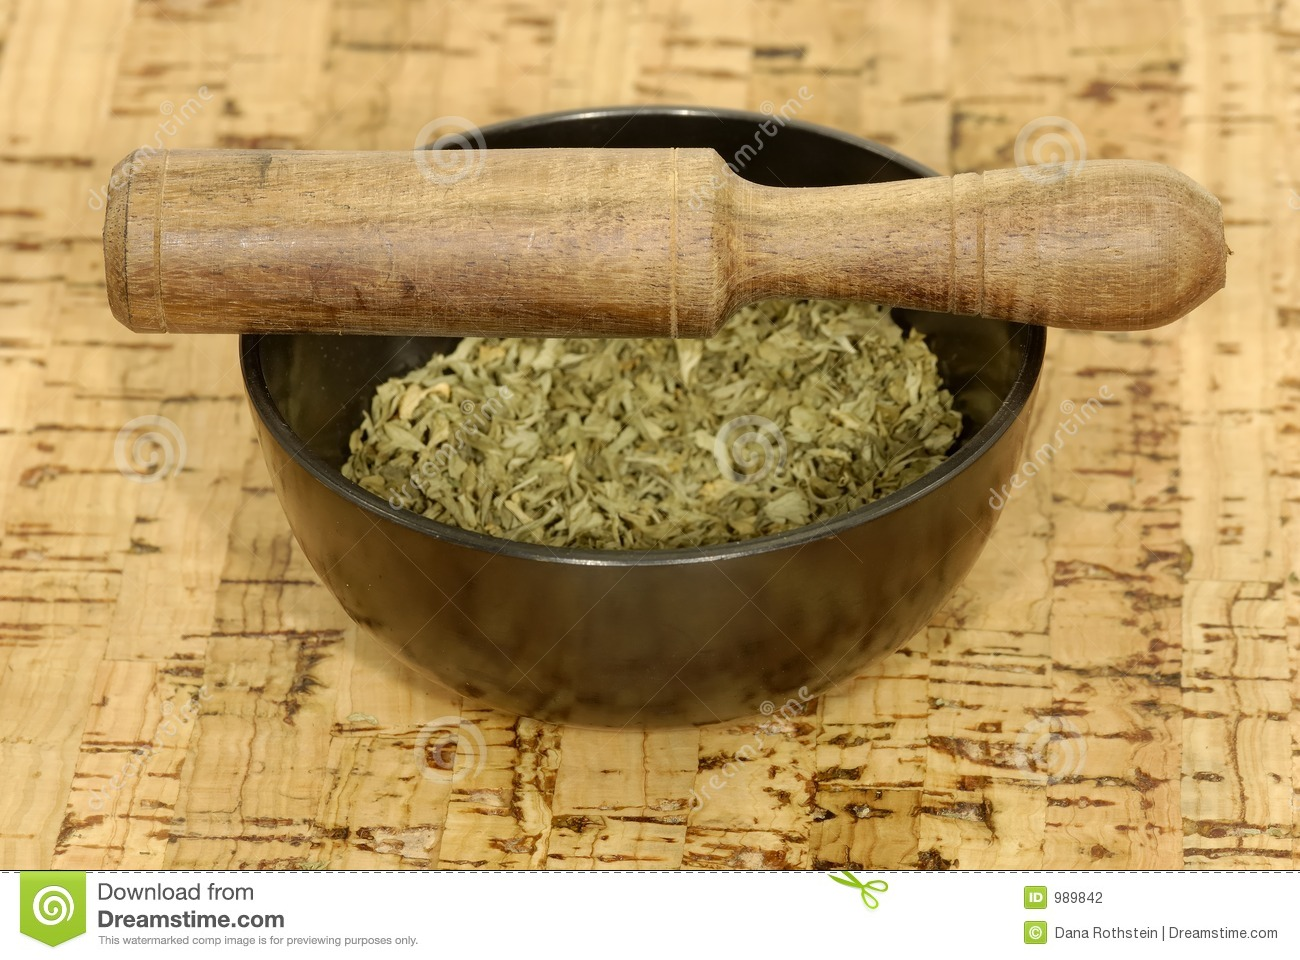 Mortelpestle